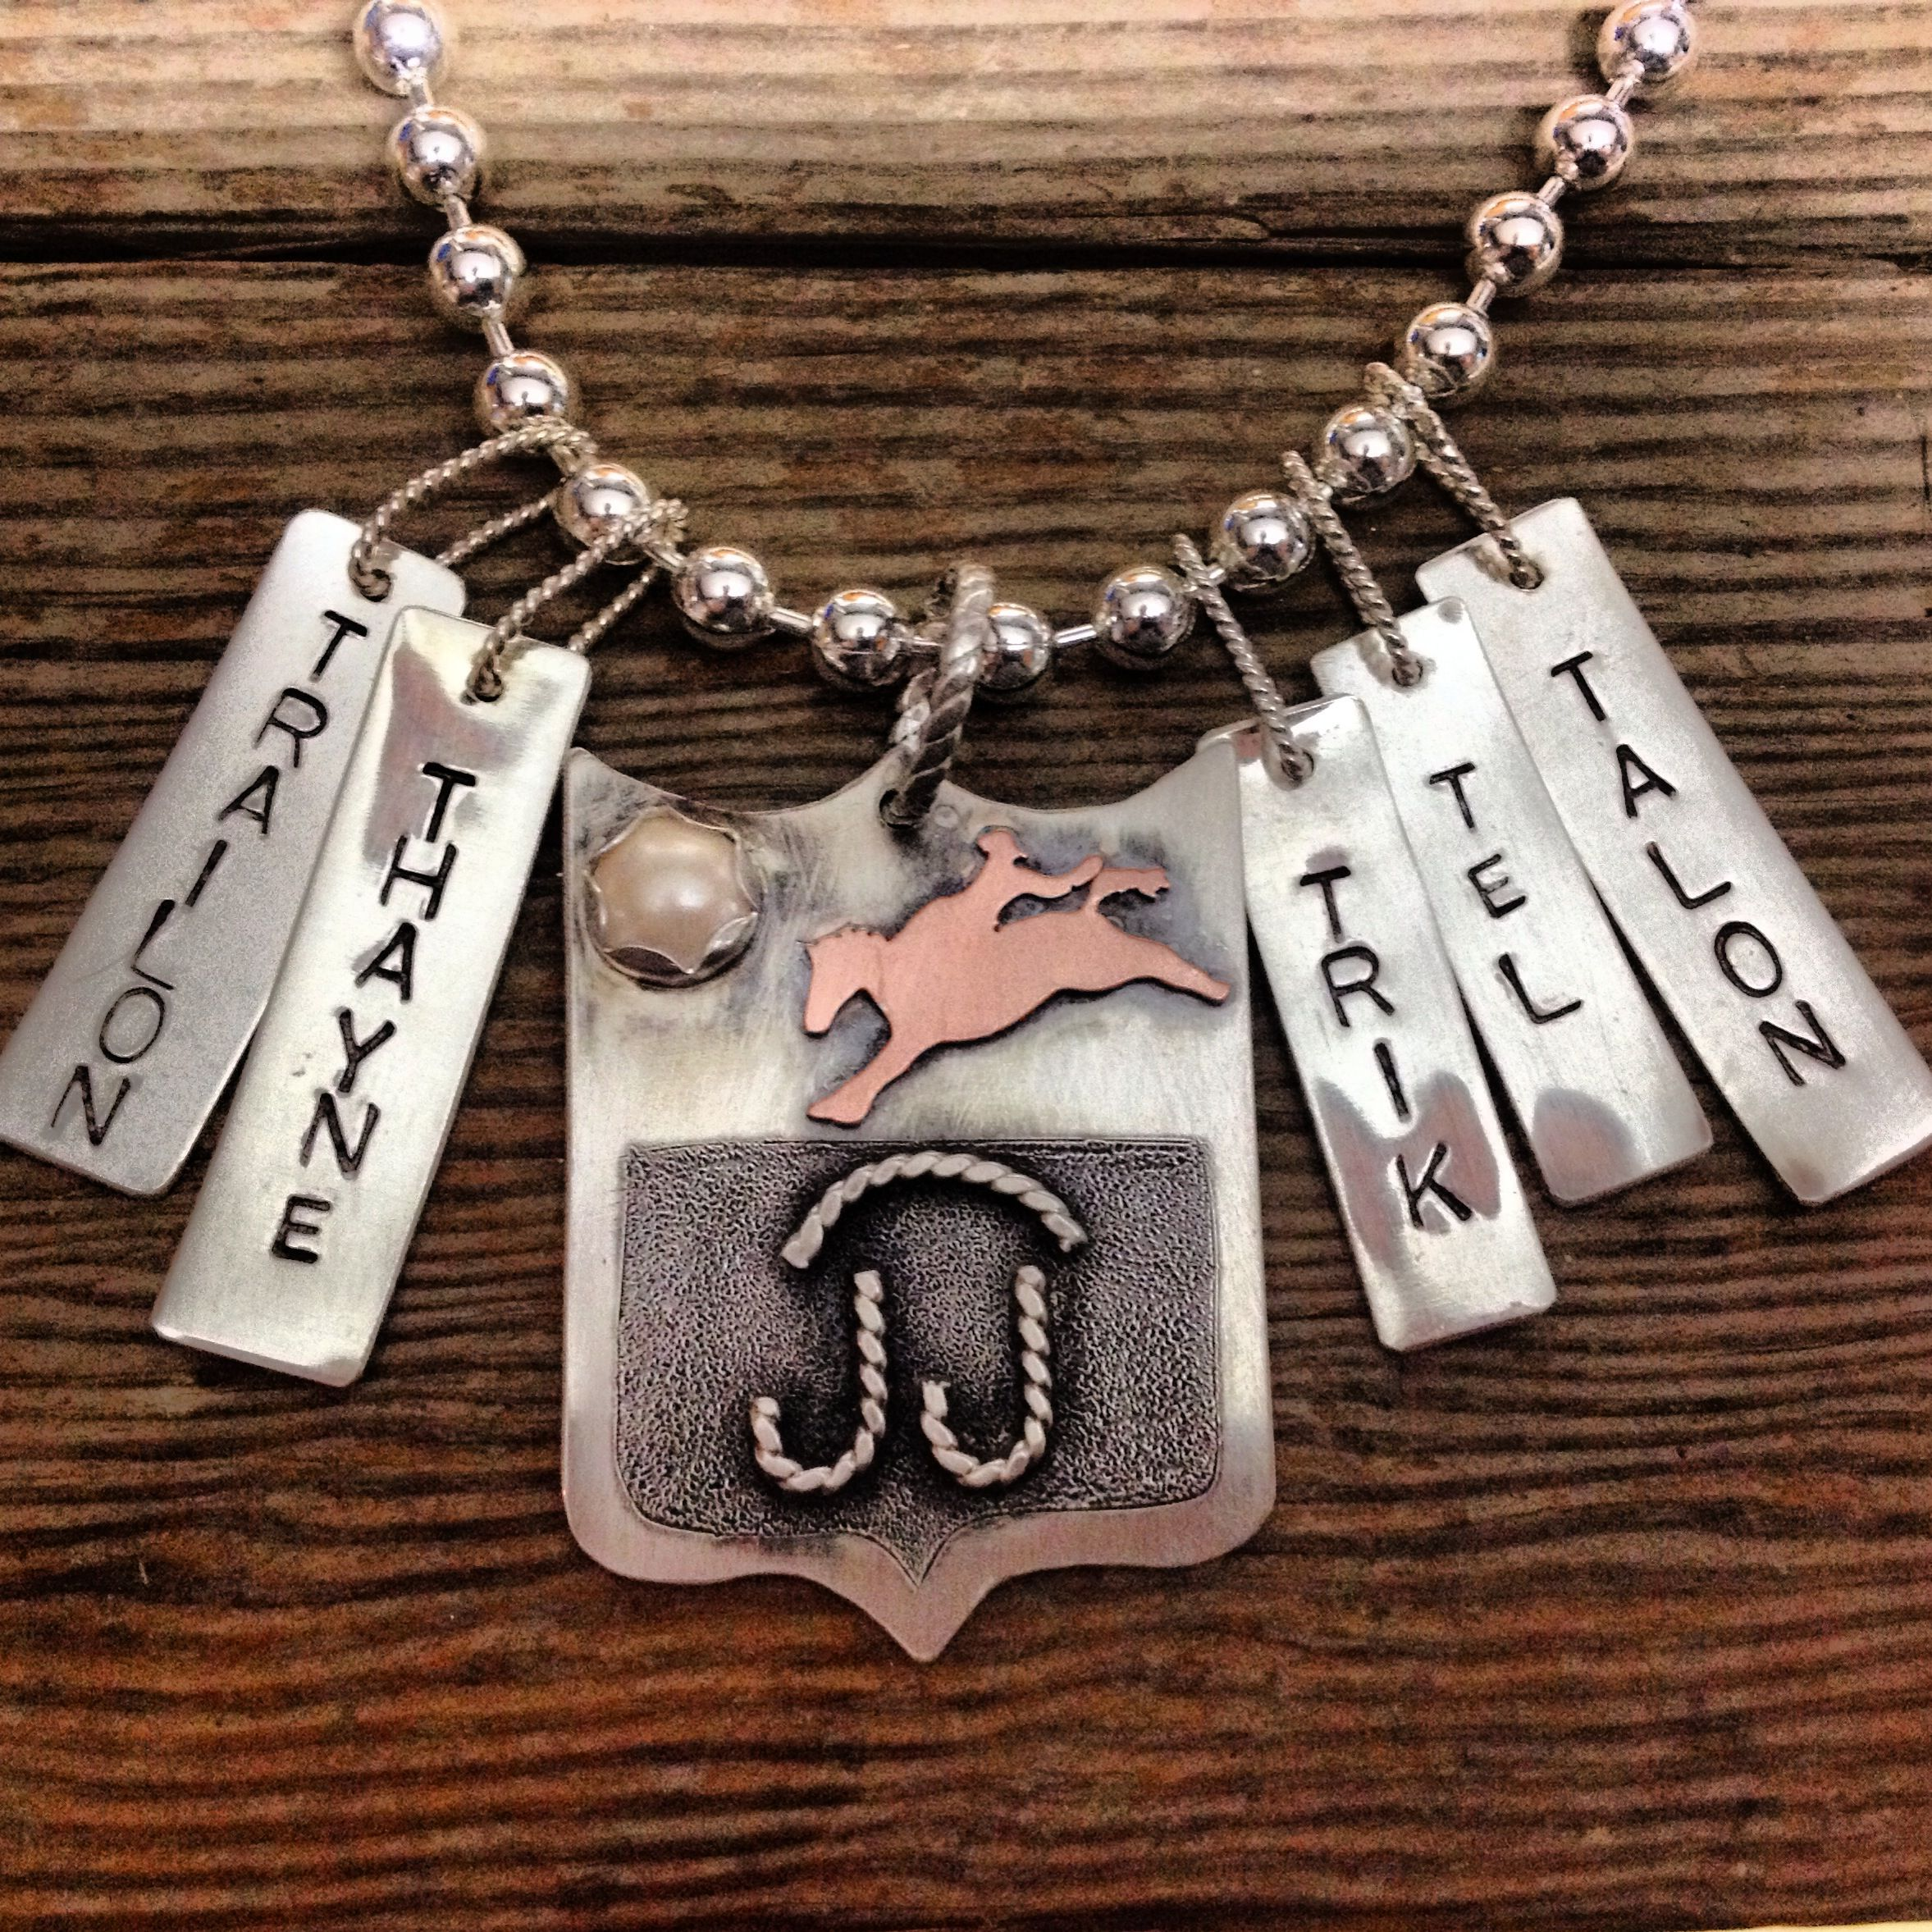 Ranch brand mothers necklace by Silo Silver. www.facebook.com/silosilver